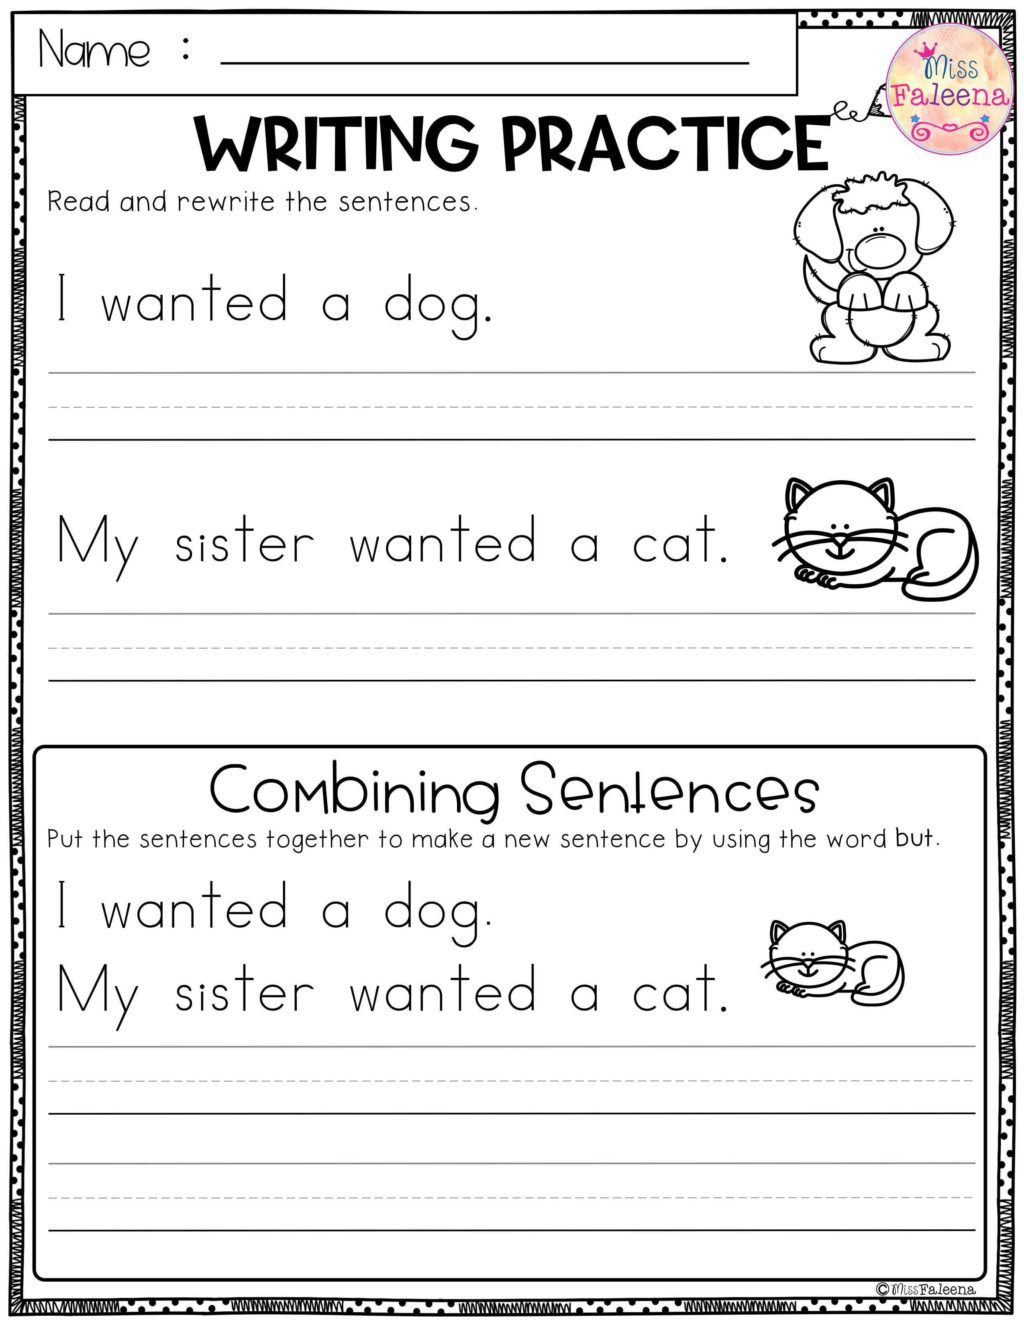 Combining Sentences Worksheet 3rd Grade Worksheet Free Writing Practice Bining Sentences